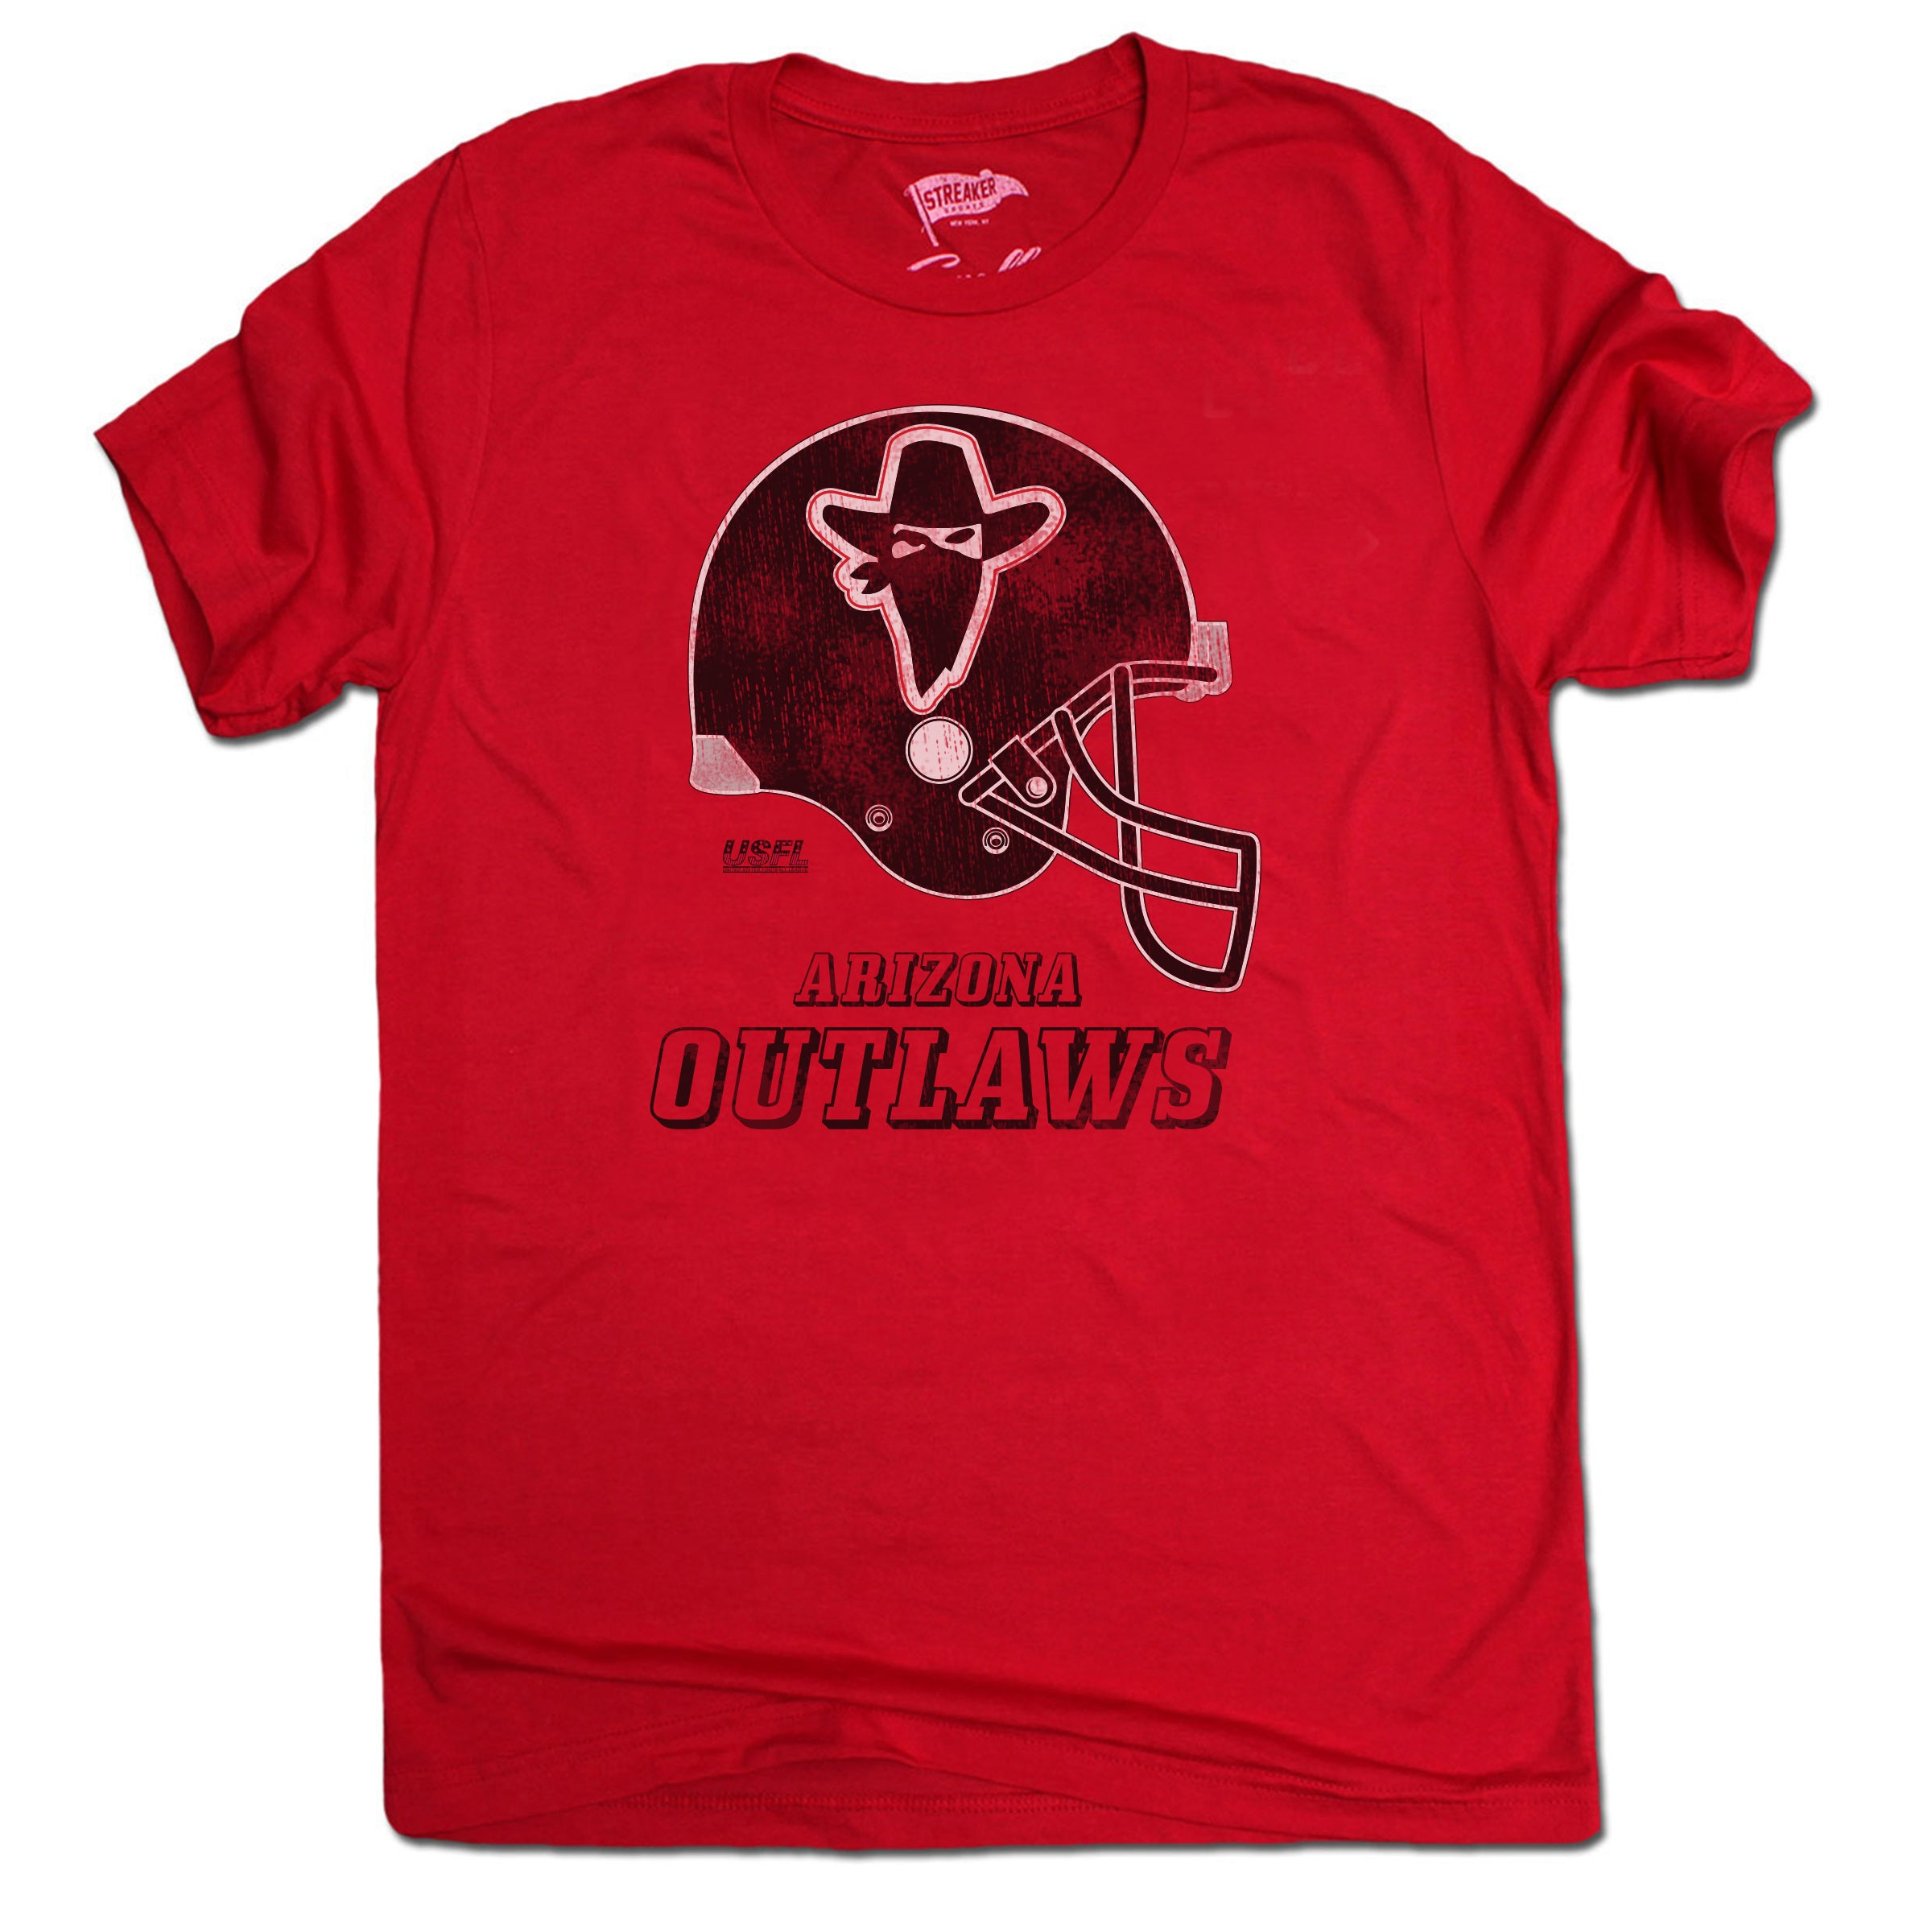 1985 Arizona Outlaws Helmet Tee - Streaker Sports